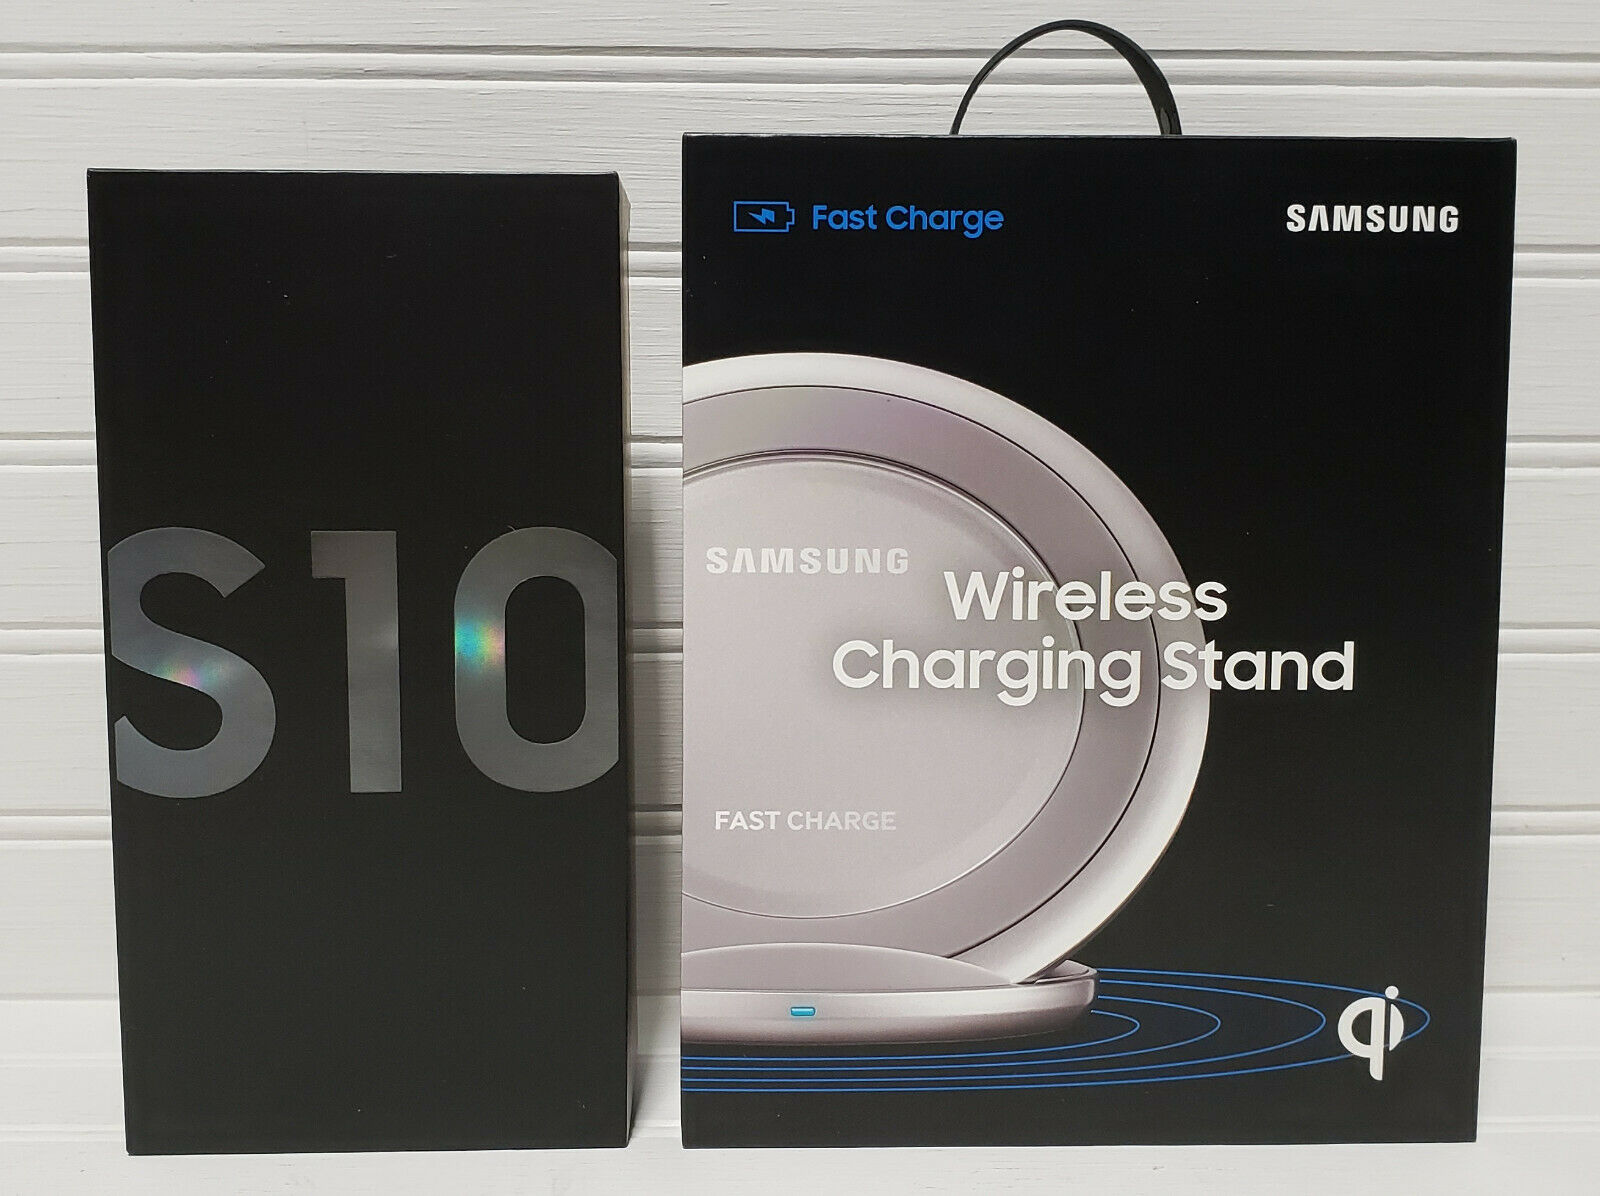 Samsung Galaxy S10 128GB + Wireless Charging